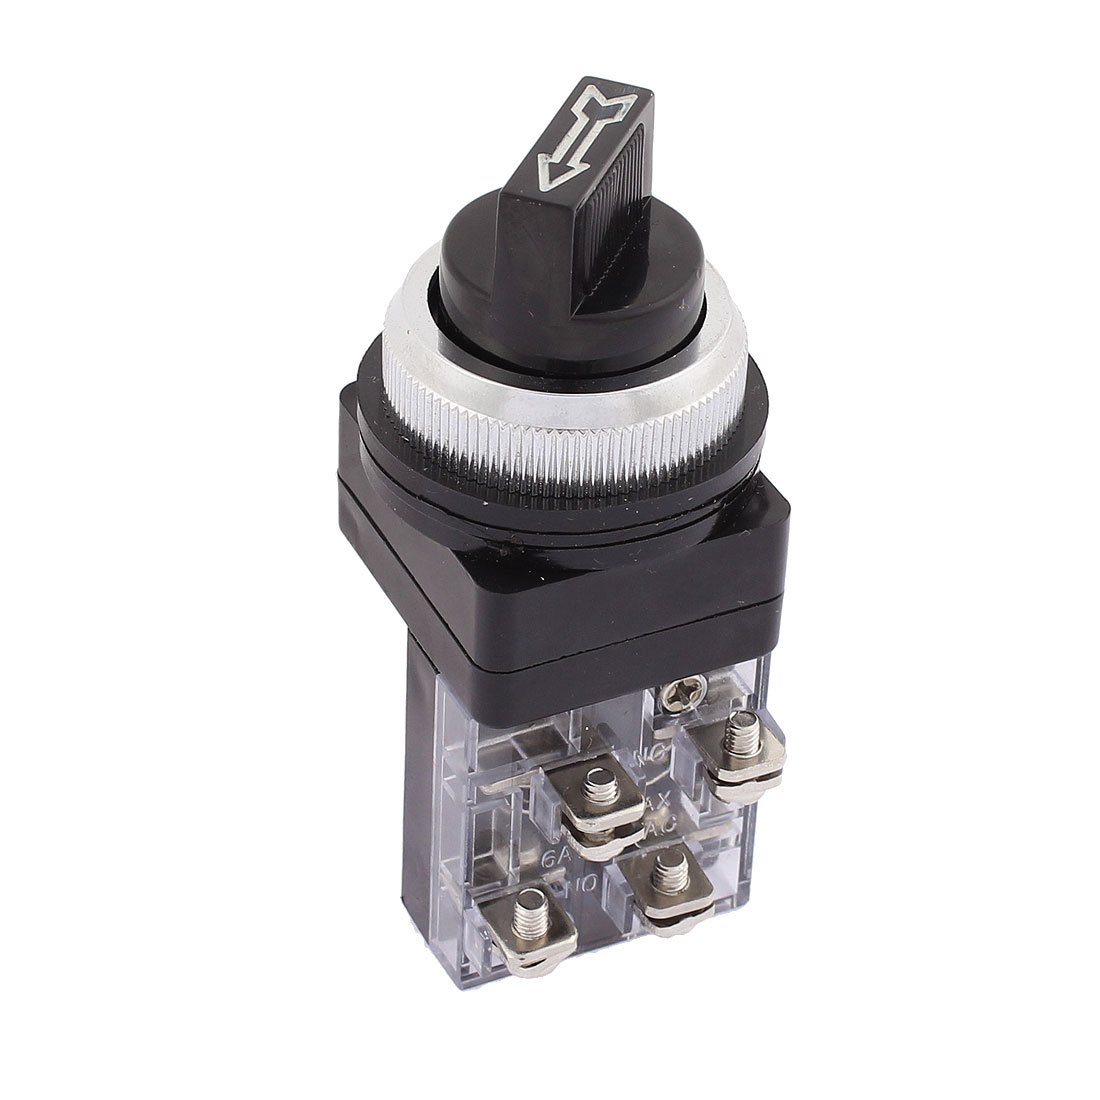 AC 250V 6A 2 Positions On/Off 4 Screw Terminals 29mm Thread Panel Mounted DPST Rotary Switch